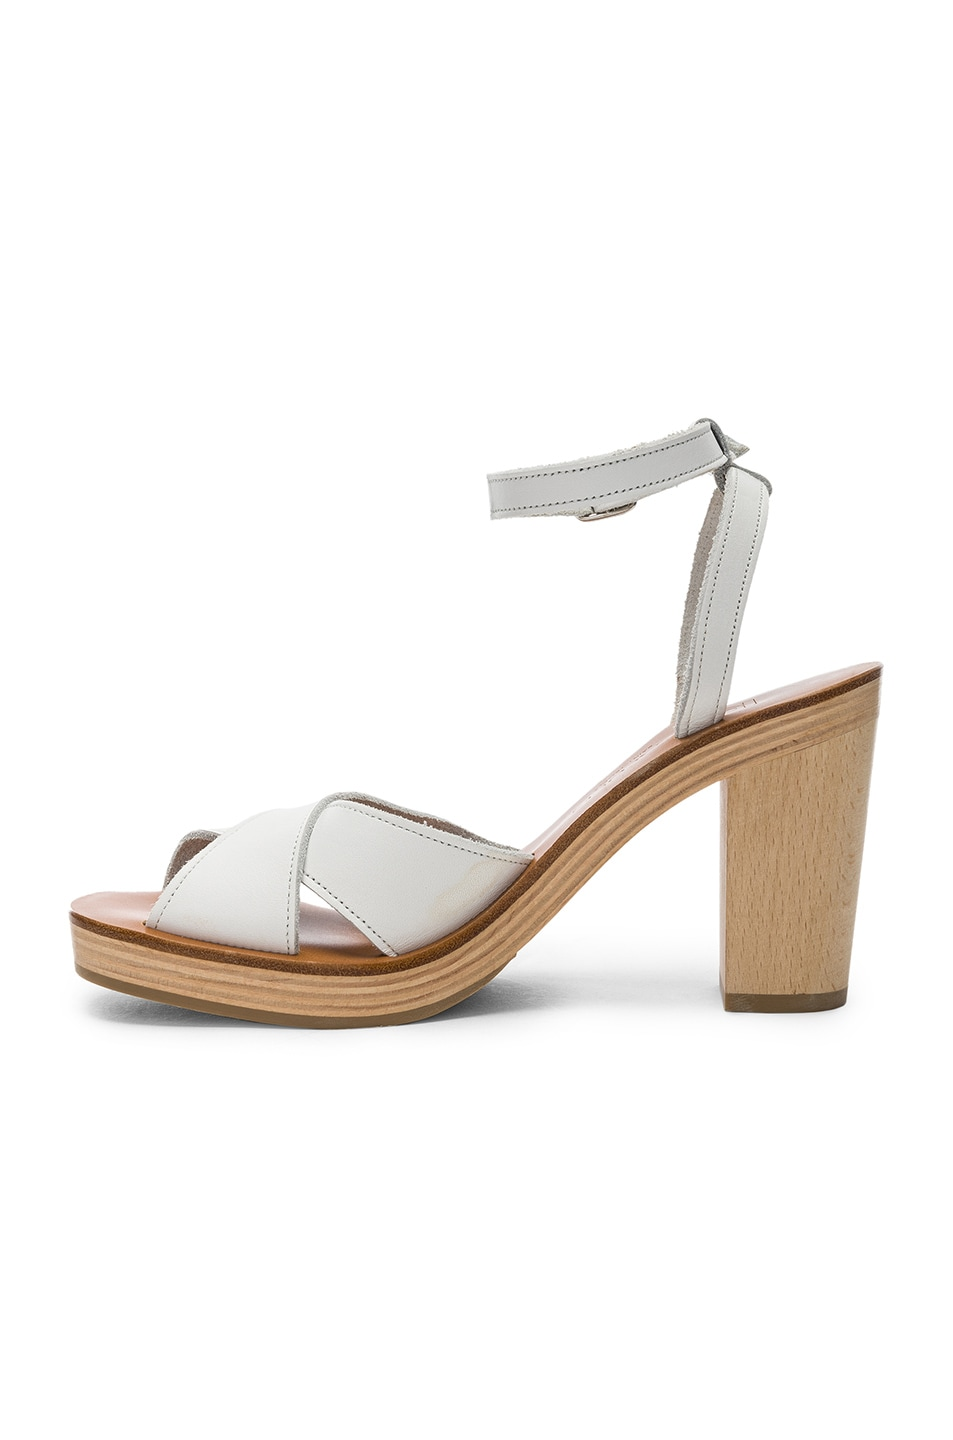 Image 5 of K Jacques Figuier Sandal in Pul Blanc